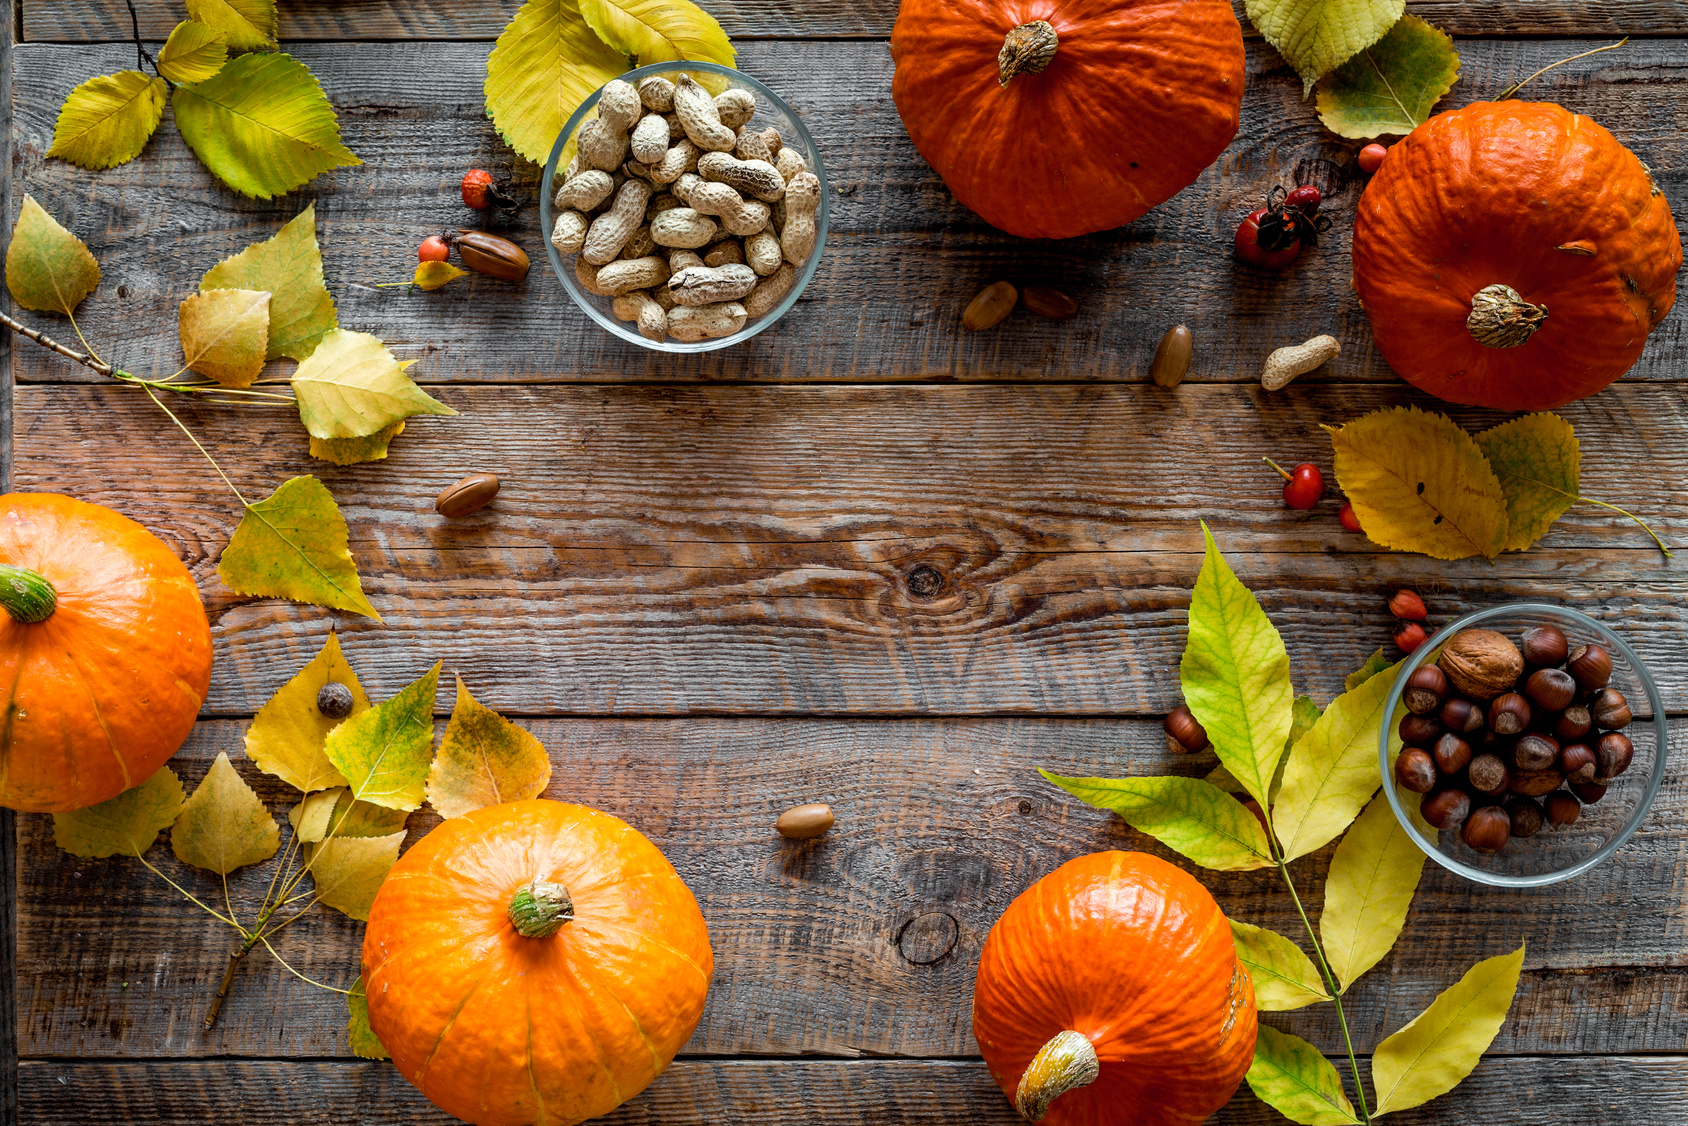 Pumpkins and nuts on a sideboard